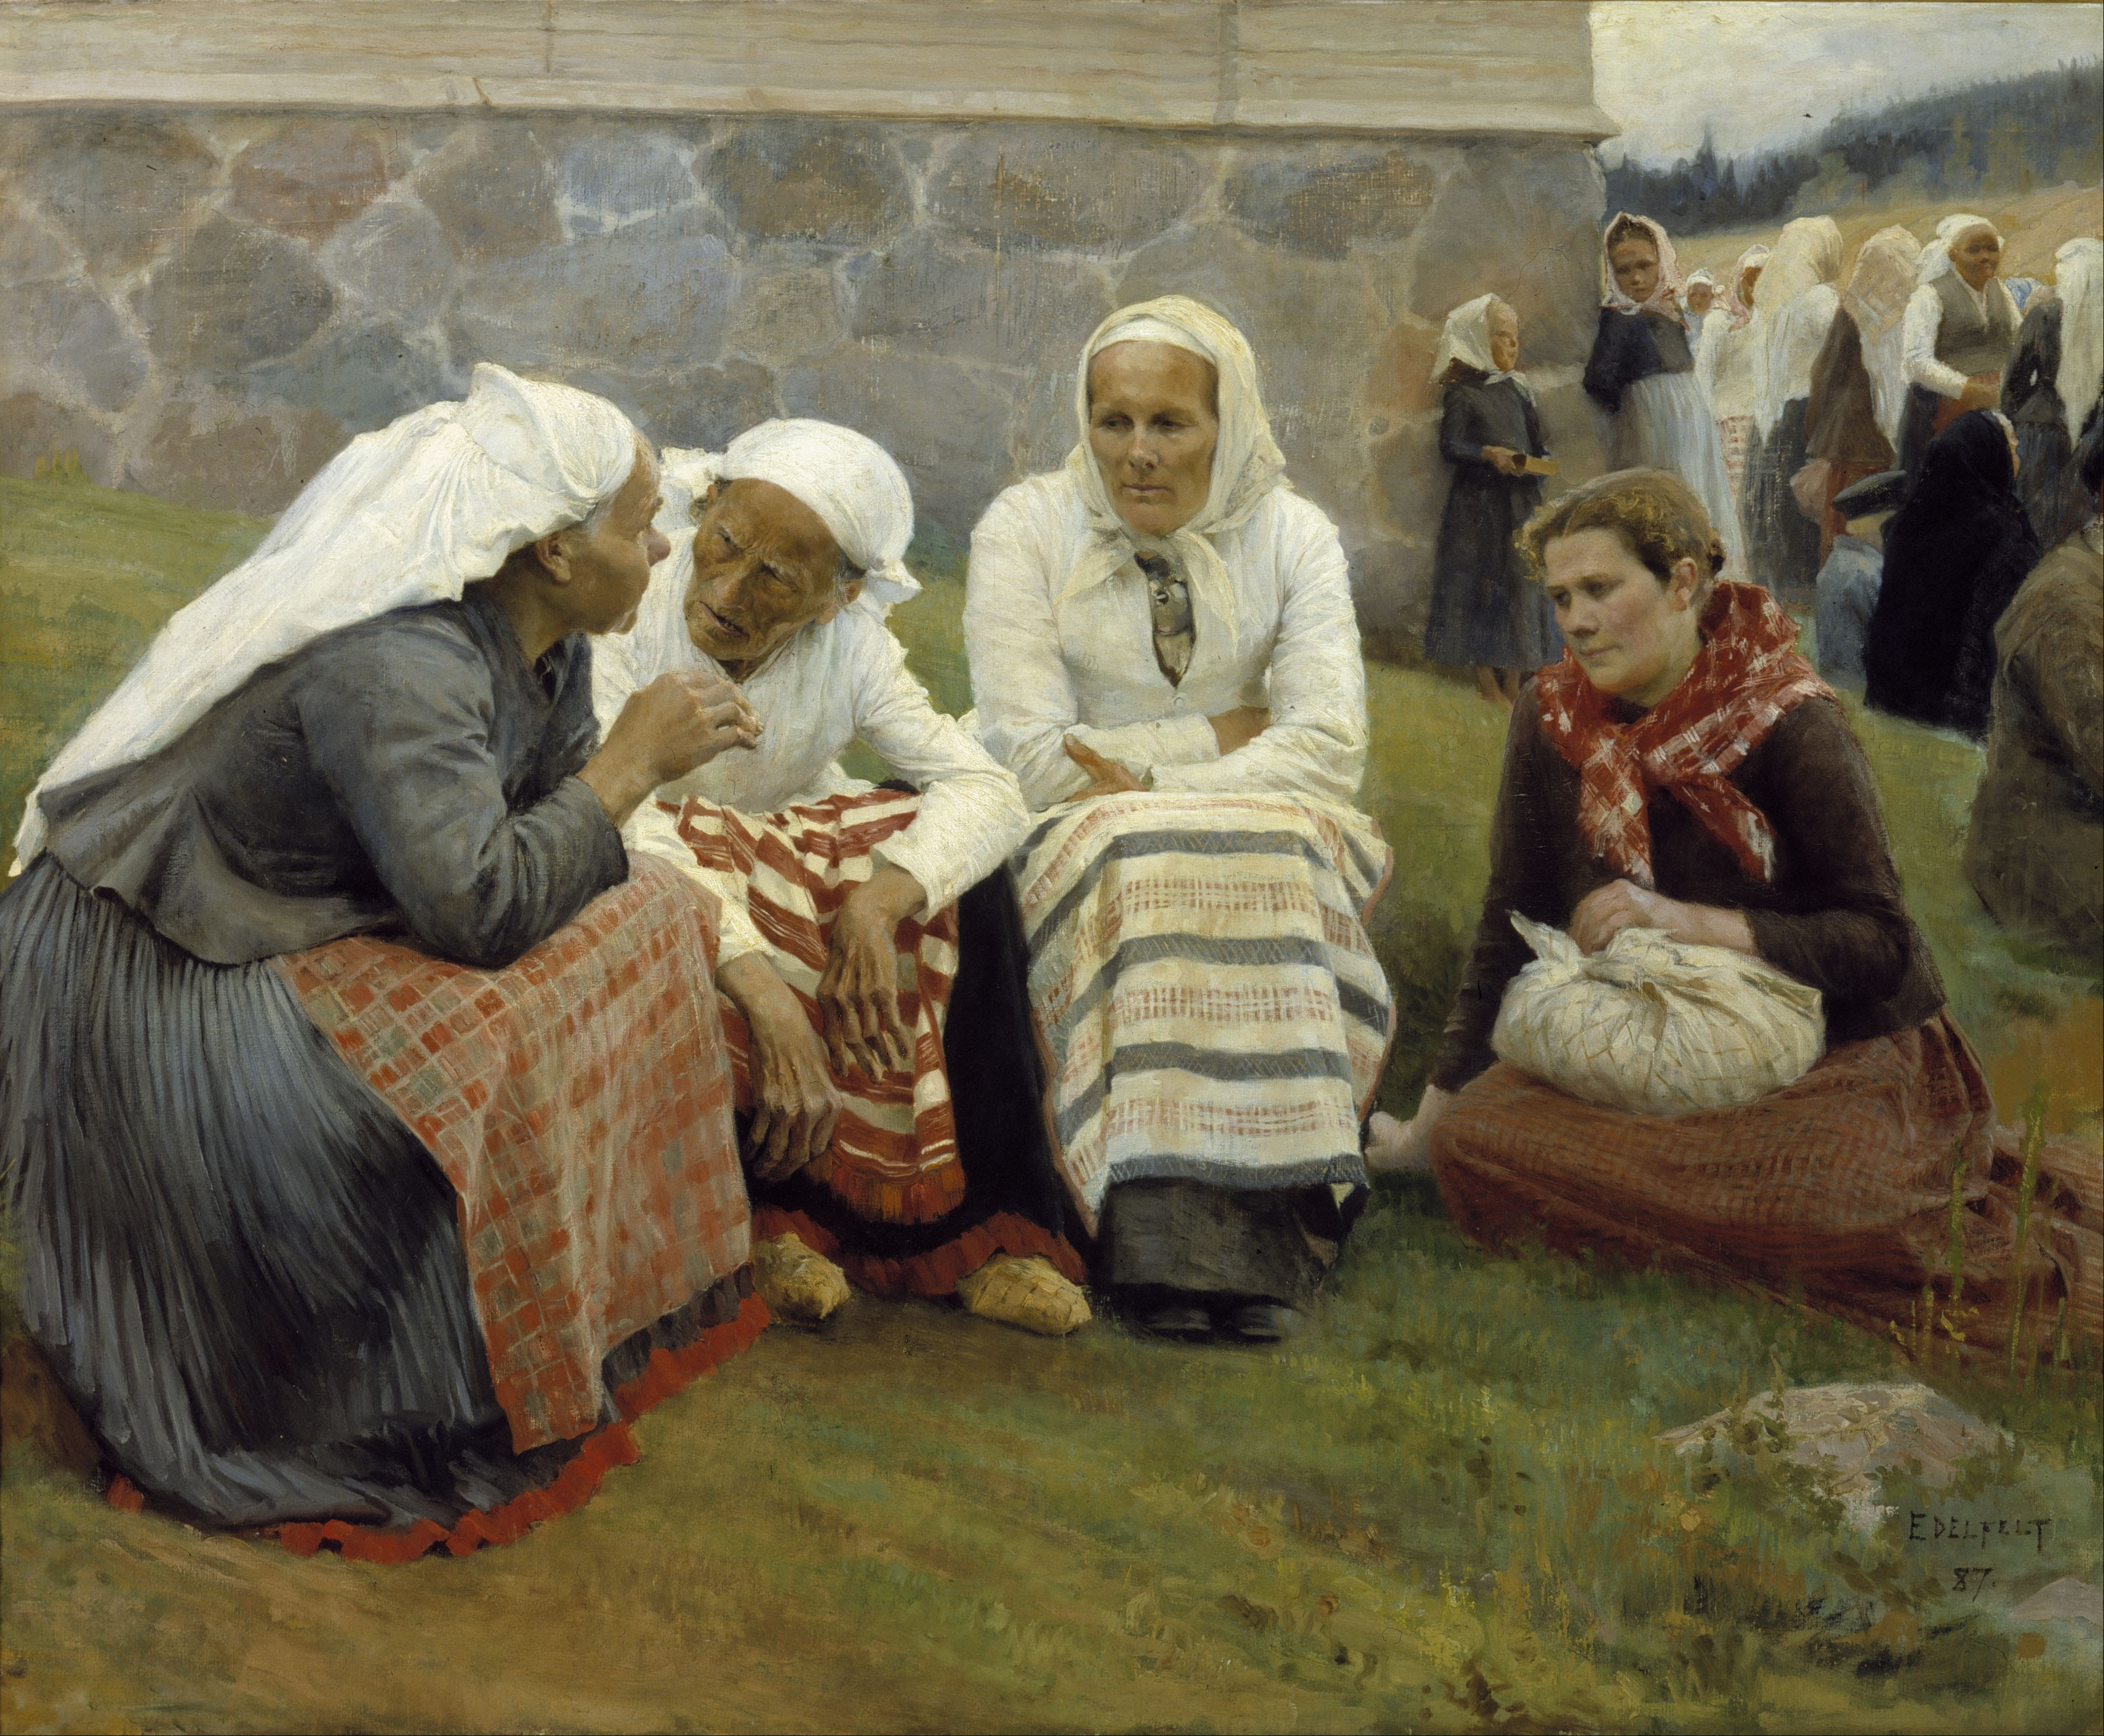 albert_edelfelt_-_women_outside_the_church_at_ruokolahti_-_google_art_project